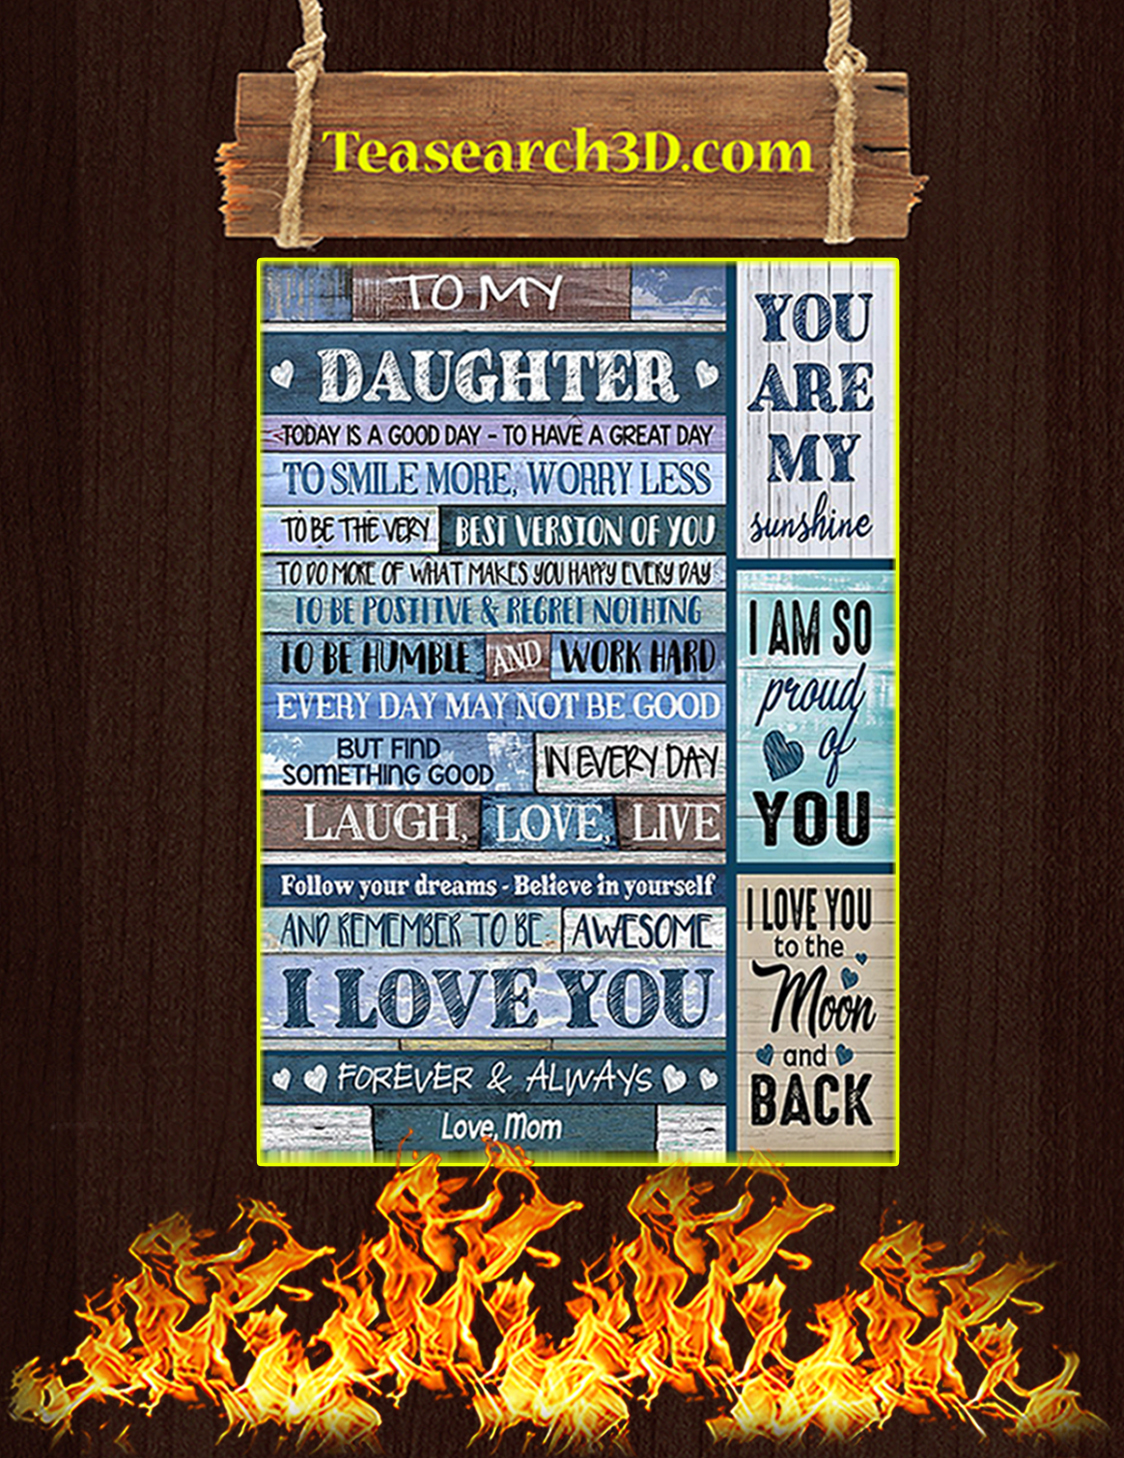 To my daughter today is a good day love mom poster A3